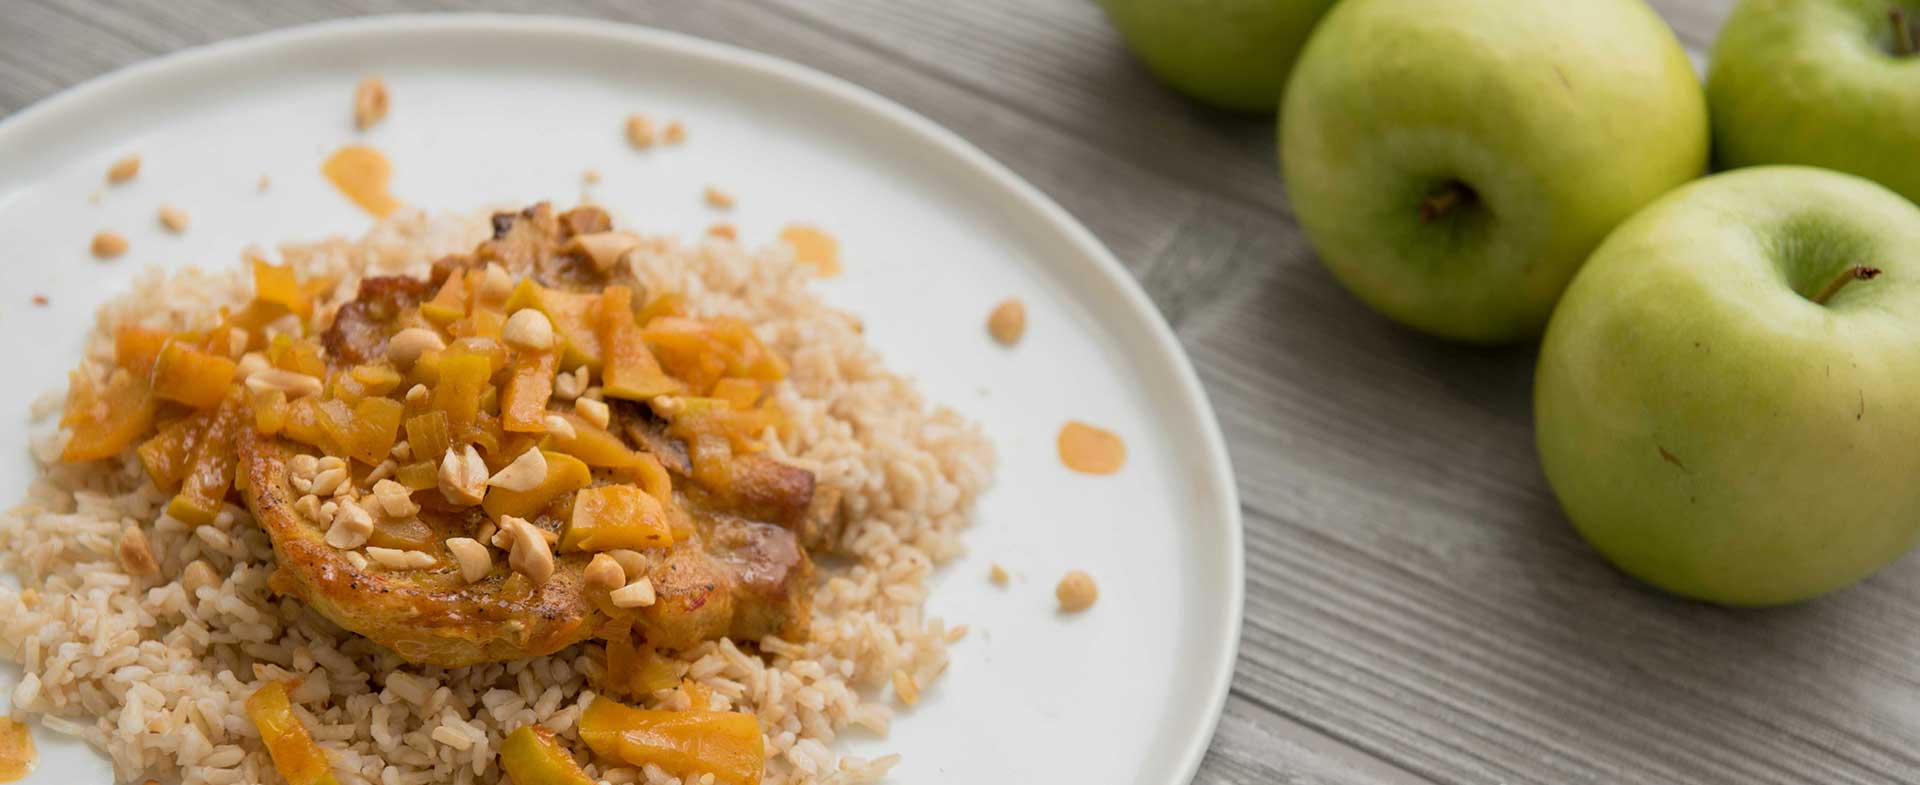 Curried pork chops with apples recipe video